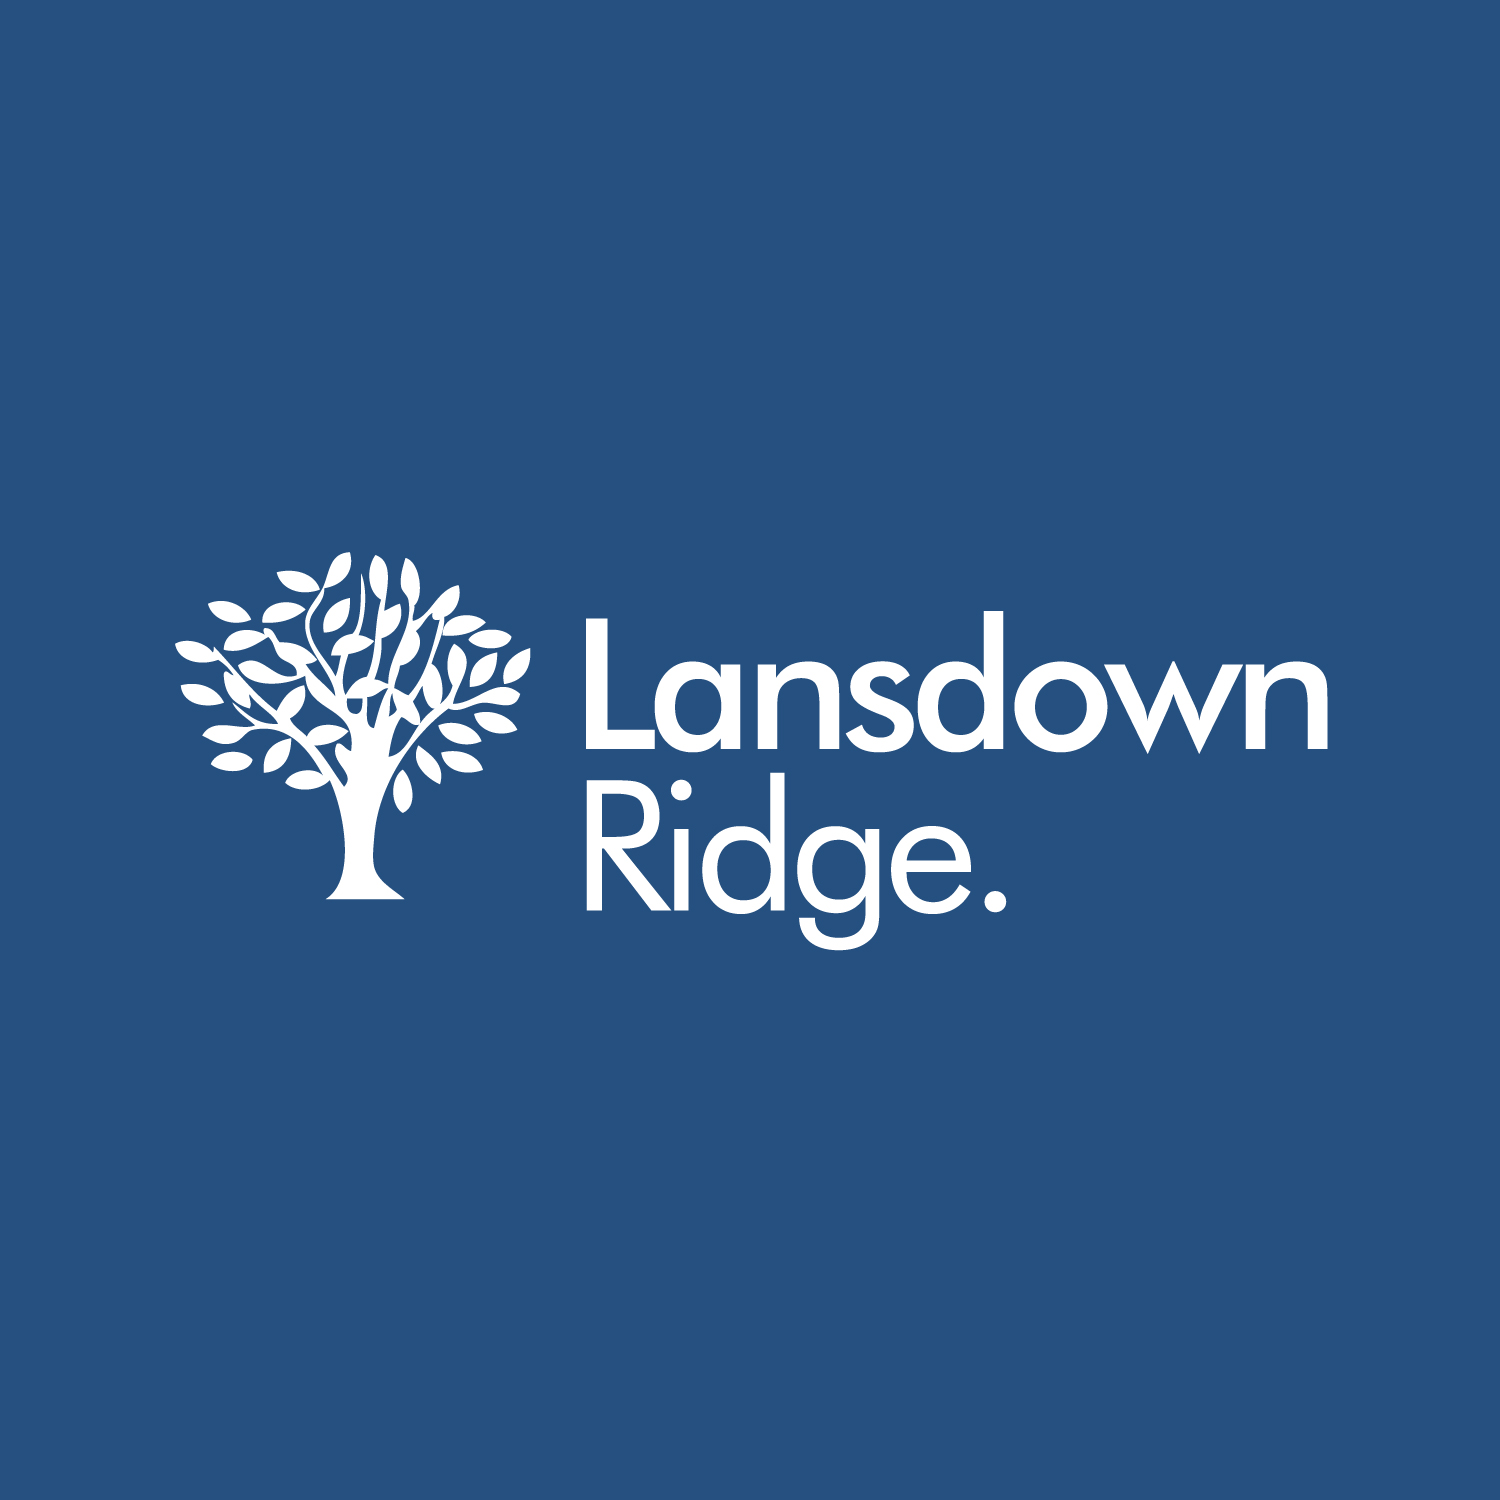 Lansdown Ridge   This highly exclusive development consists of four high quality detached family homes on the Northern edge of the World Heritage city of Bath, adjoining Green Belt and the Cotswold area of outstanding beauty.